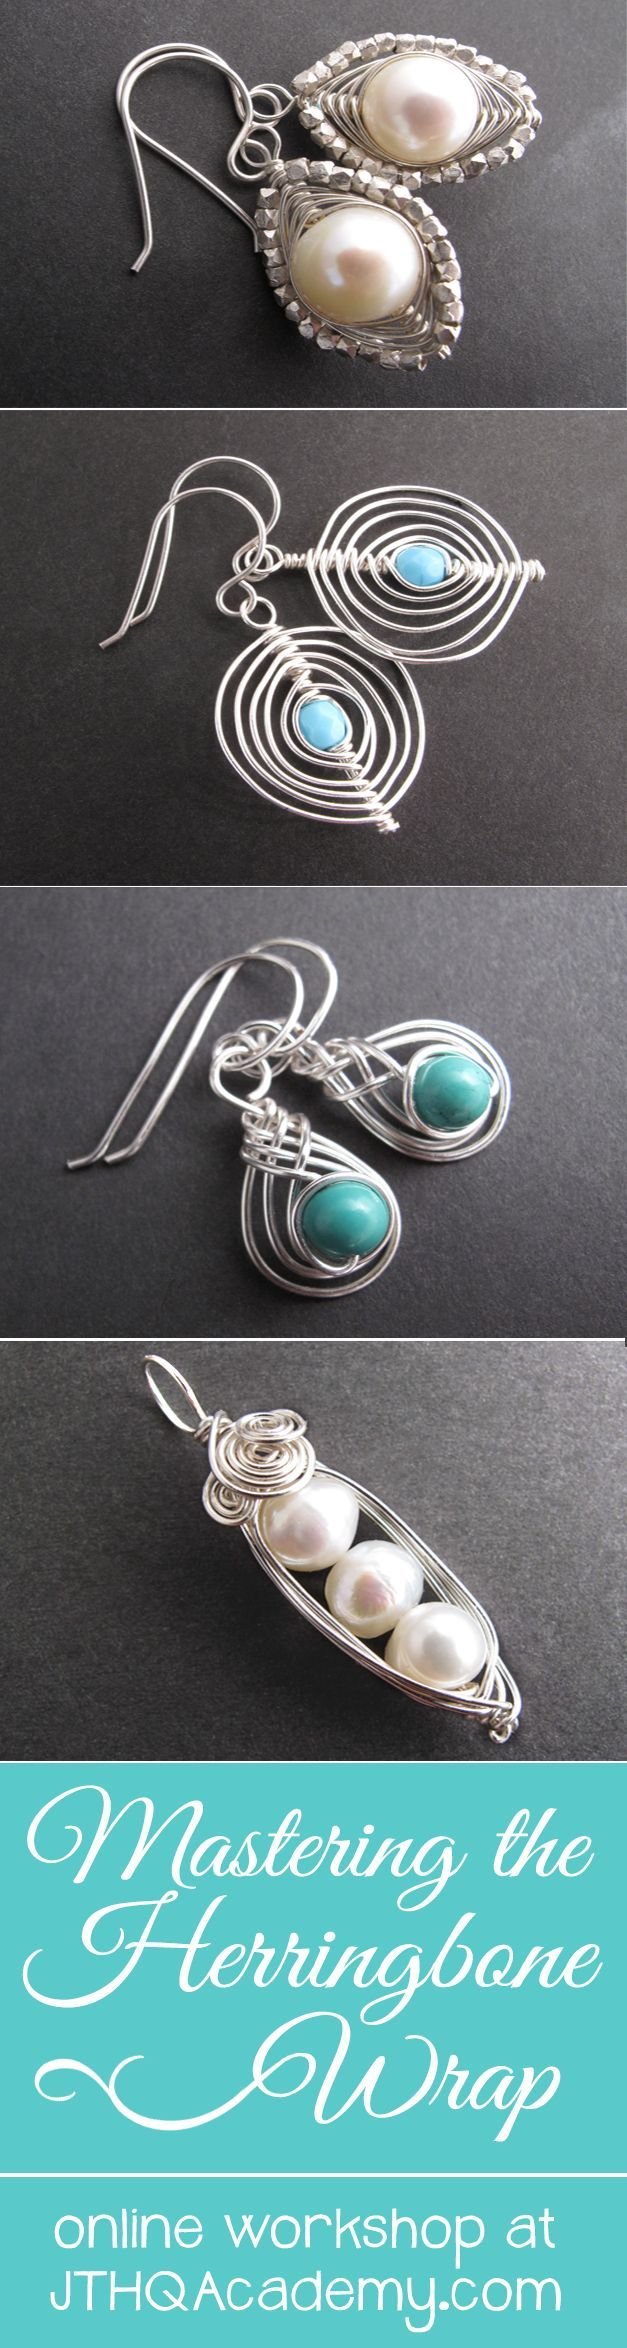 Learn all these herringbone wire jewelry designs and MORE as part of this online #jewelrymaking workshop. Click to see more or enroll at http://academy.jewelrytutorialhq.com